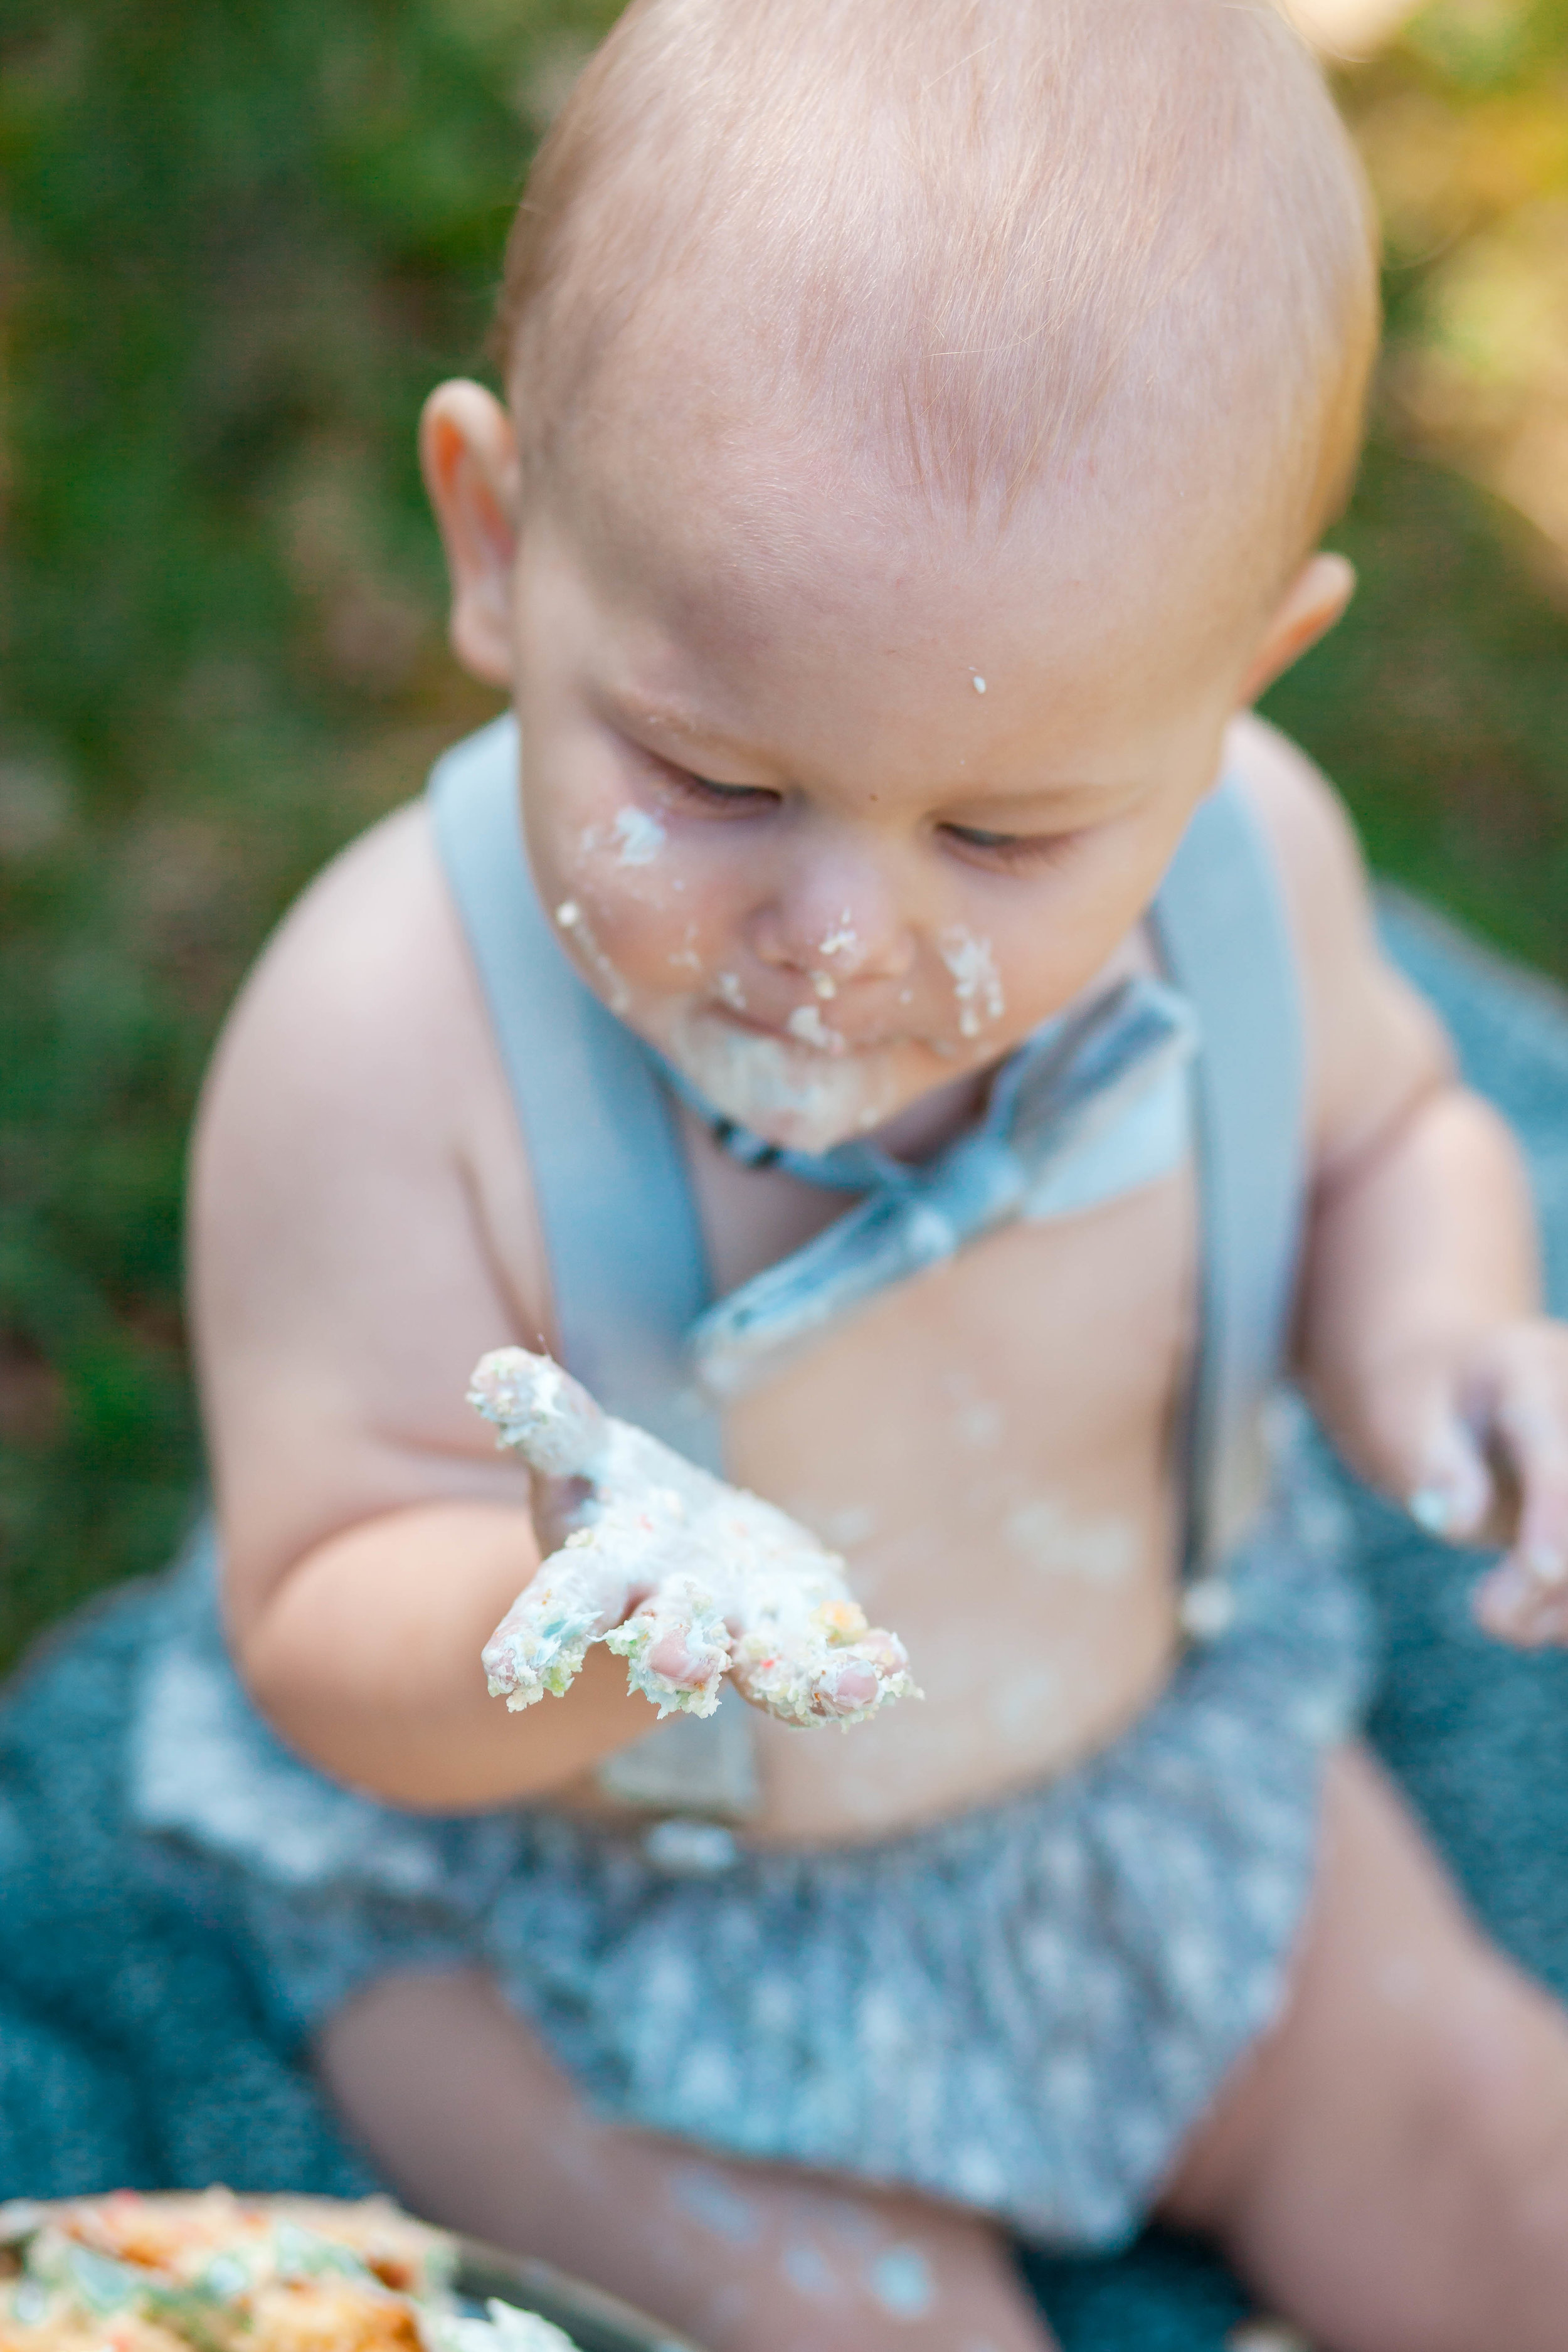 Amy D Photography- Cake Smash- Outdoor Cake Smash- Boys Cake Smash- Outdoor Boys Cake Smash- First Birthday Photos- Family Photography- Children Photography (27 of 67).jpg